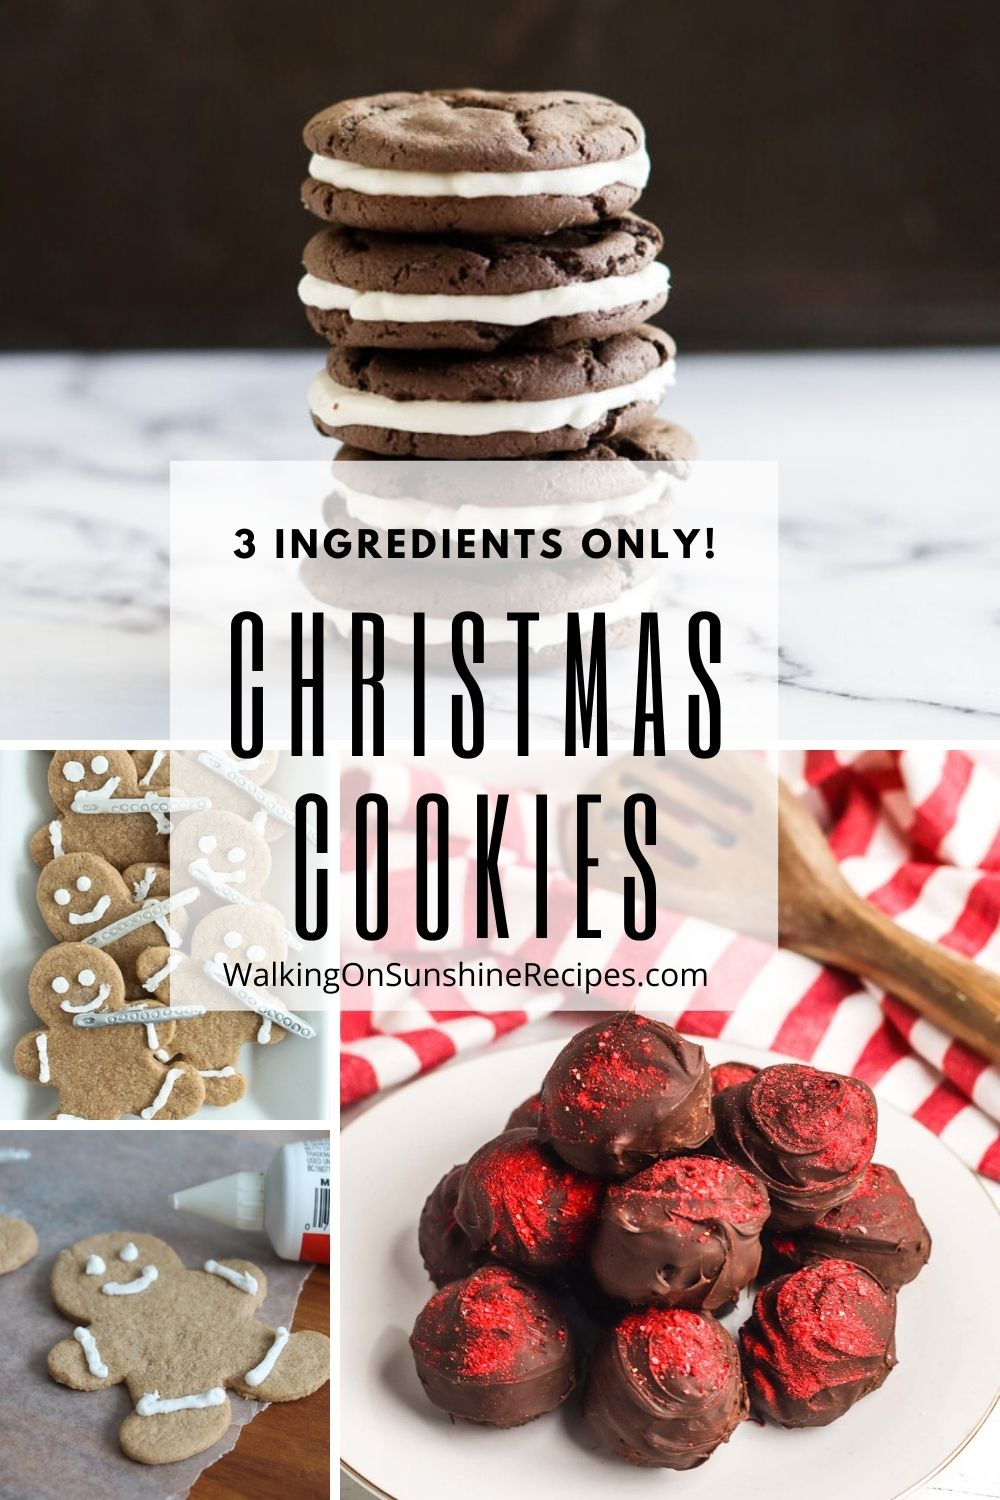 4 different recipes that only need 3 ingredients to bake and enjoy for the holidays.